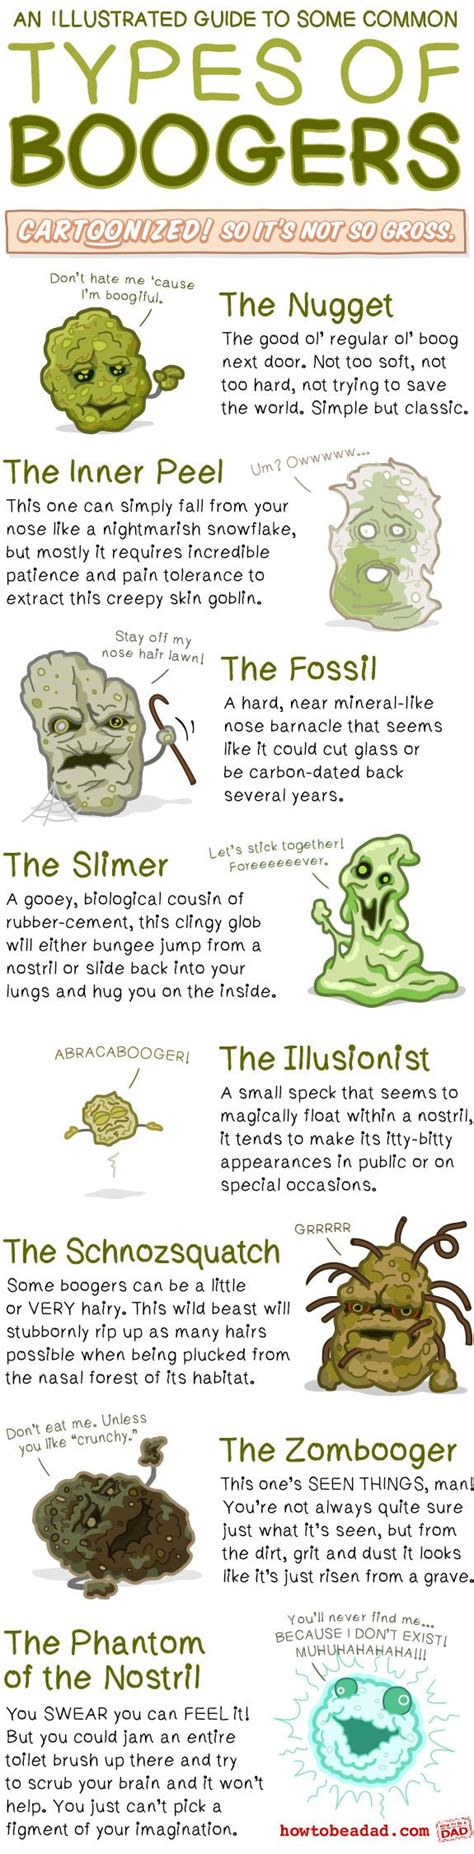 color of boogers types of boogers a cartoonized guide by it is and as